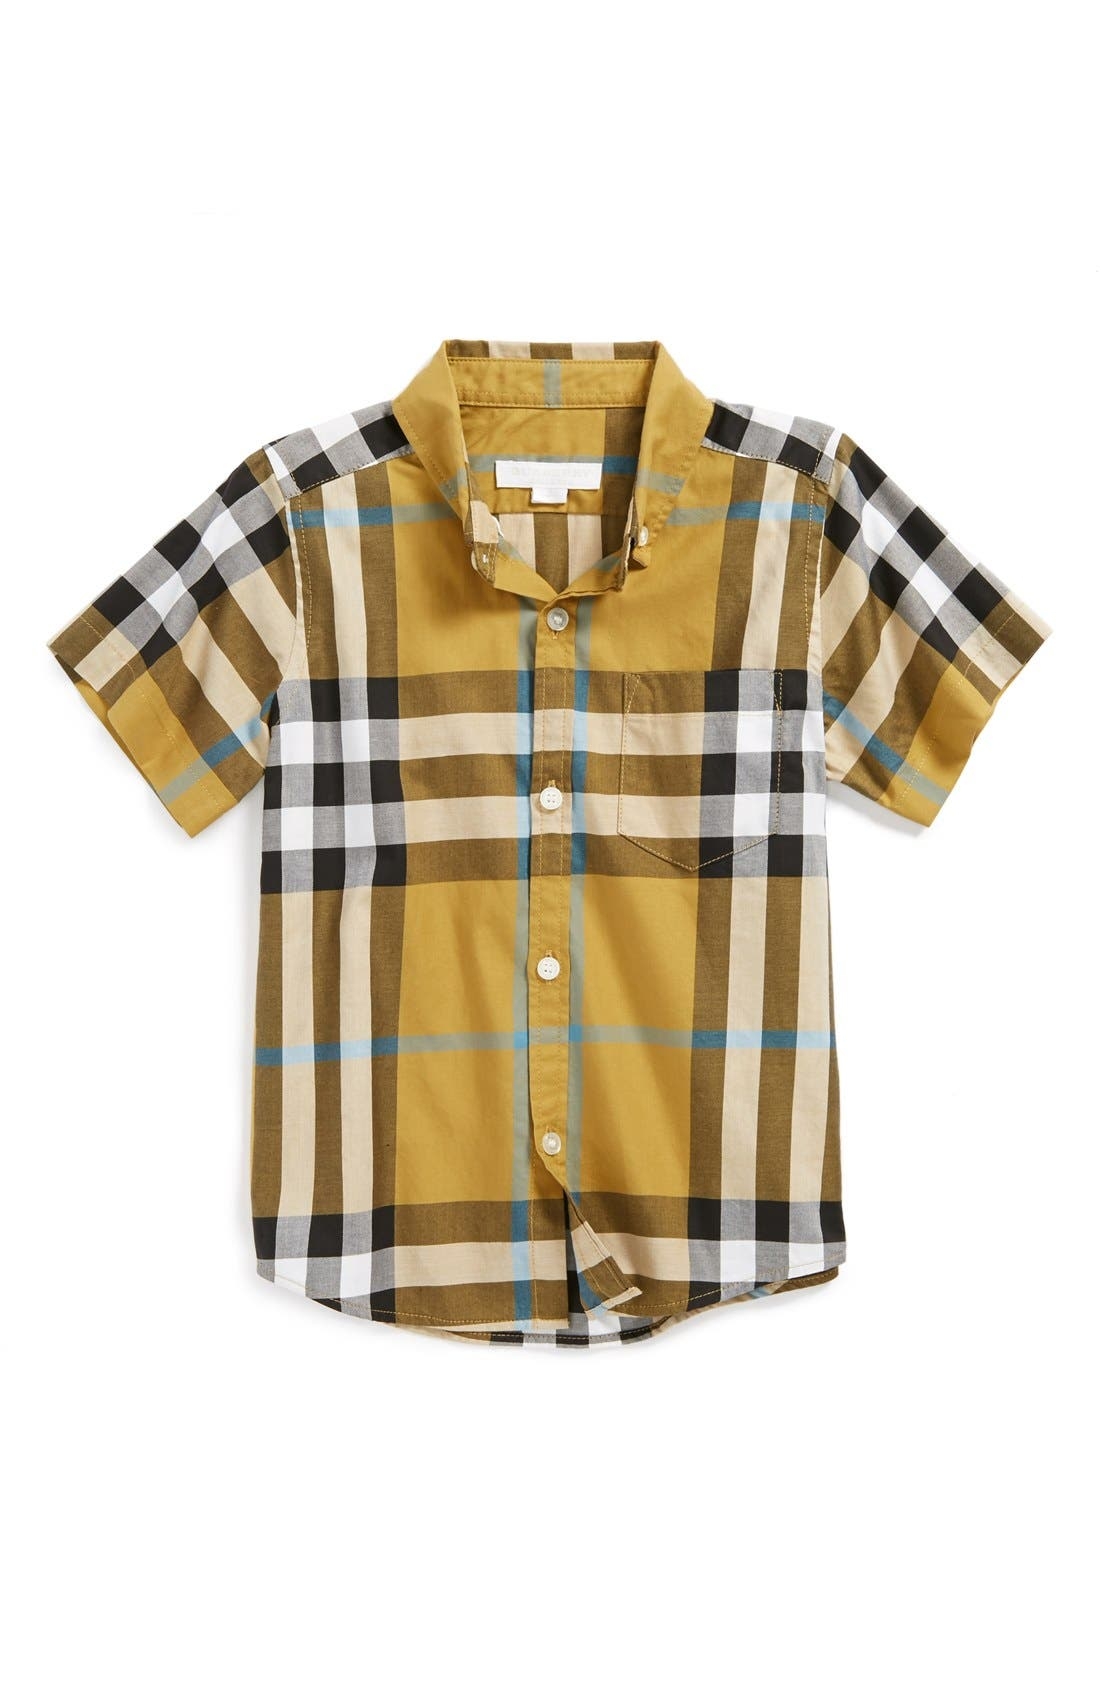 Alternate Image 1 Selected - Burberry 'Mini Fred' Woven Shirt (Baby Boys)